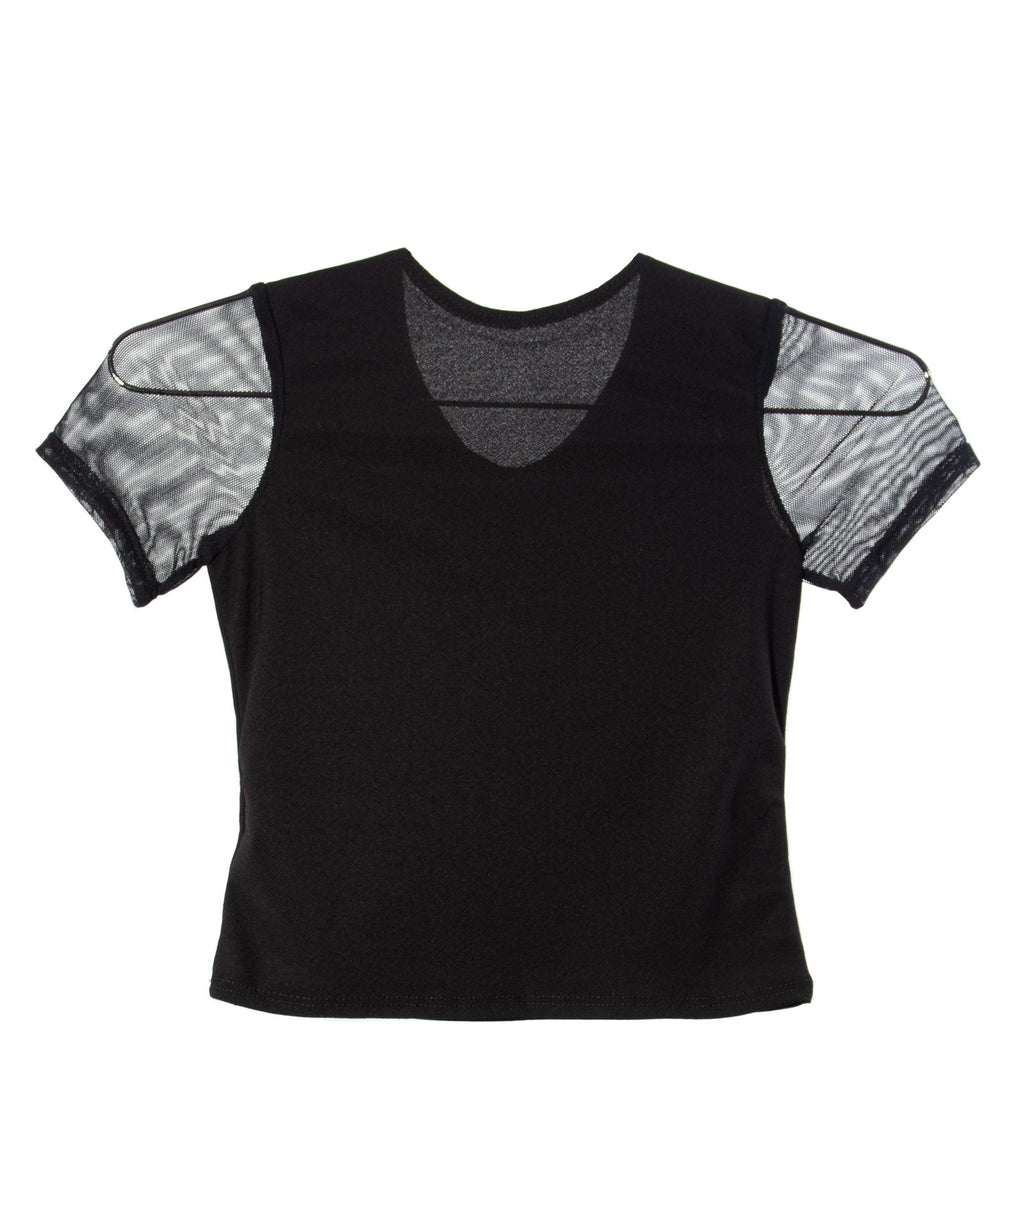 Cheryl Creations Girls Black Mesh Top